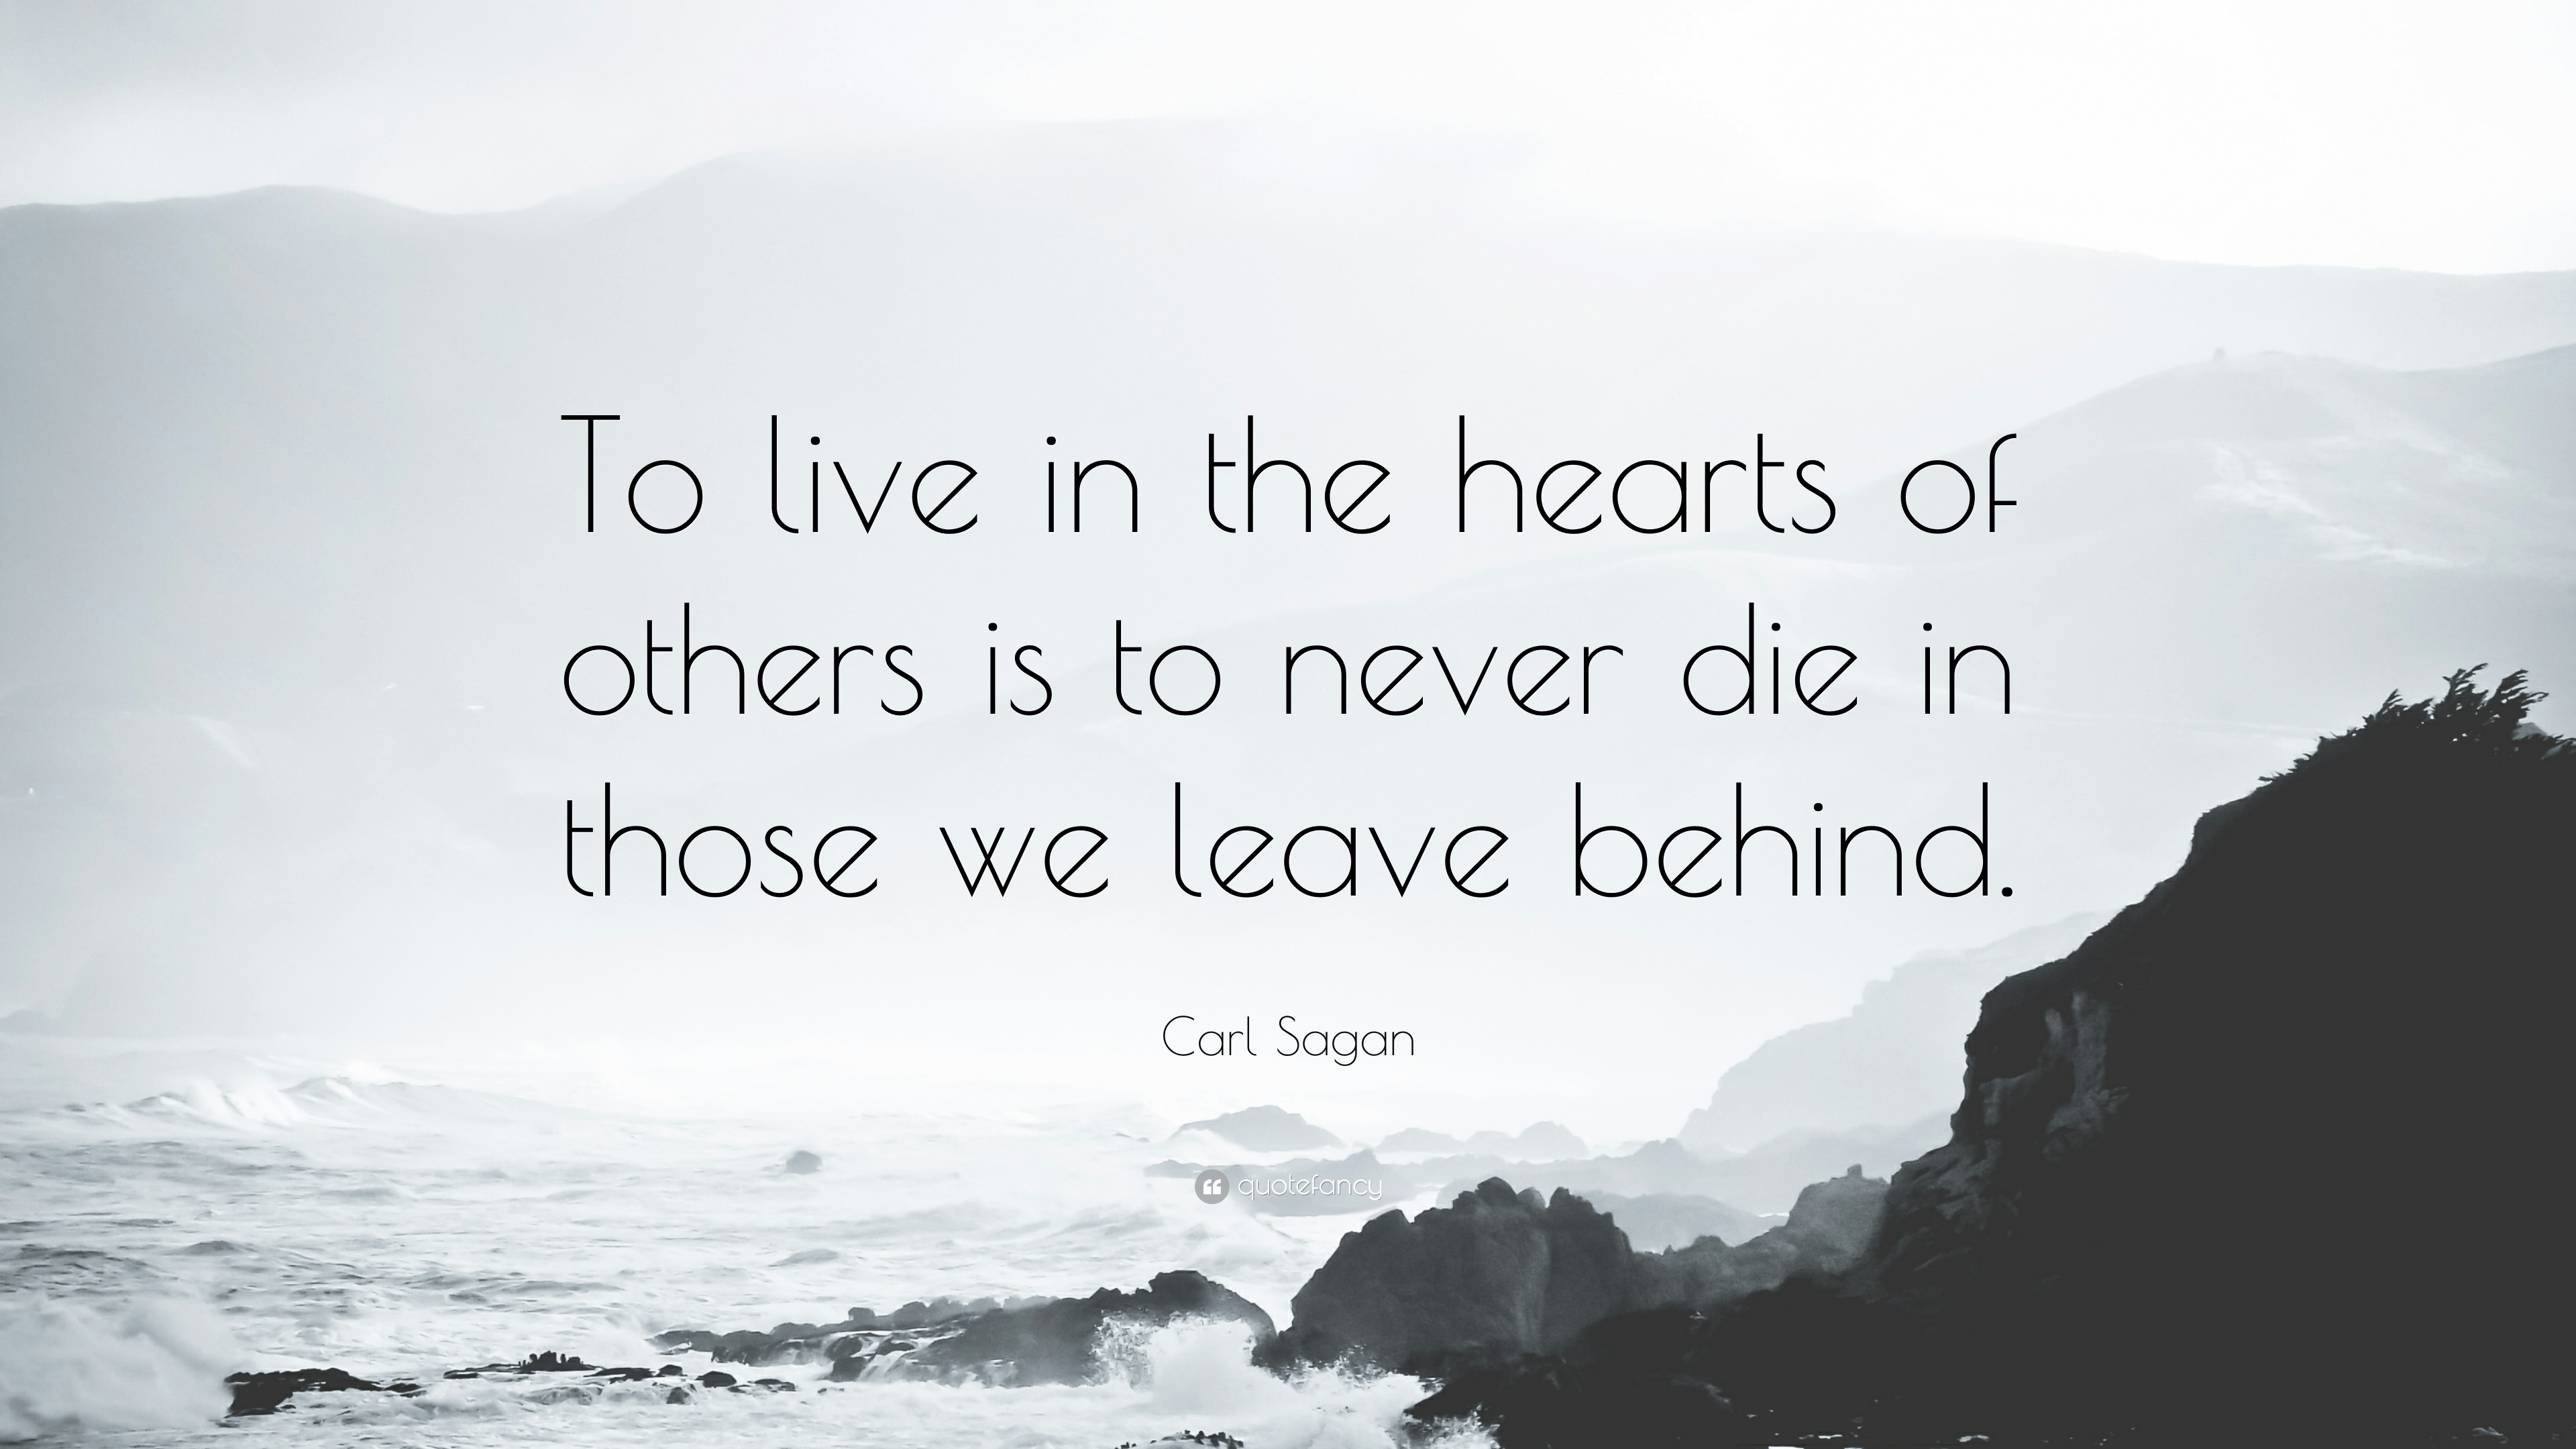 Studying Quotes Wallpaper Carl Sagan Quote To Live In The Hearts Of Others Is To